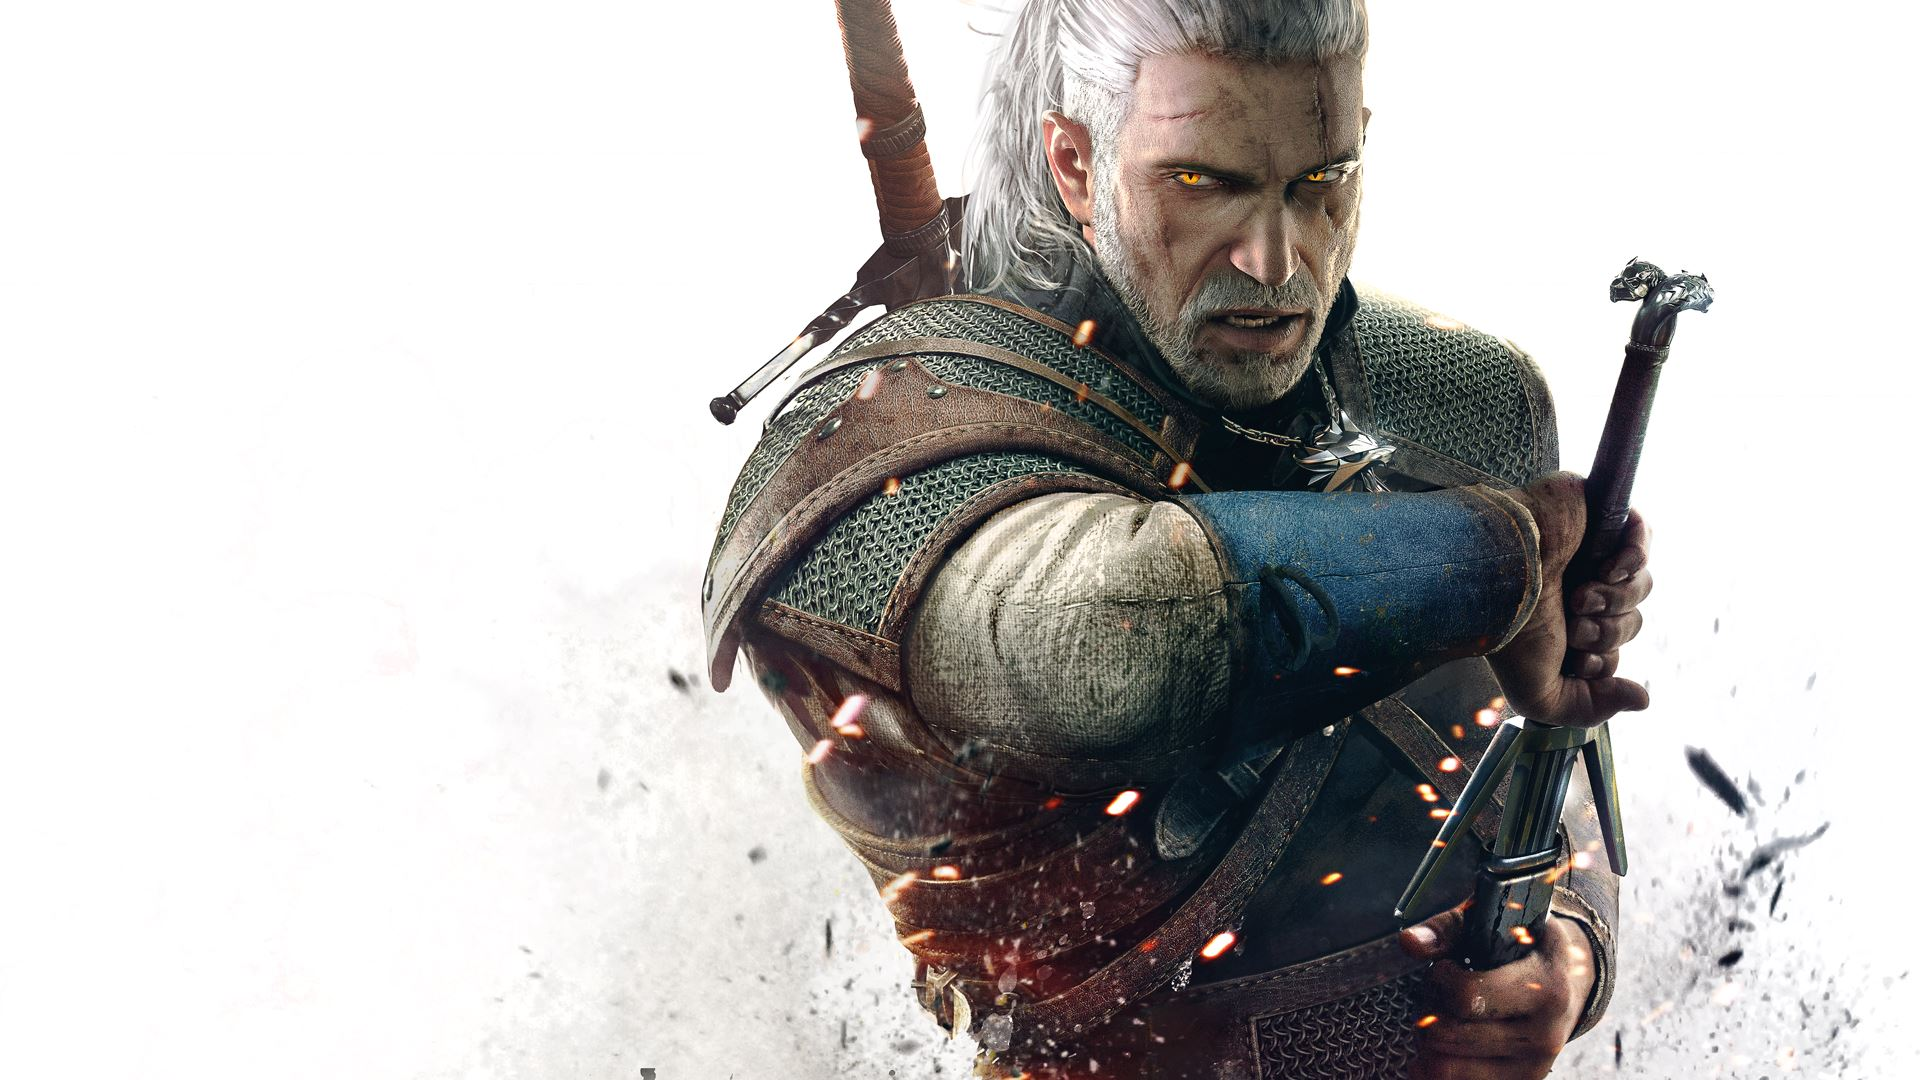 the_witcher_3_wild_hunt_game-HD.jpg